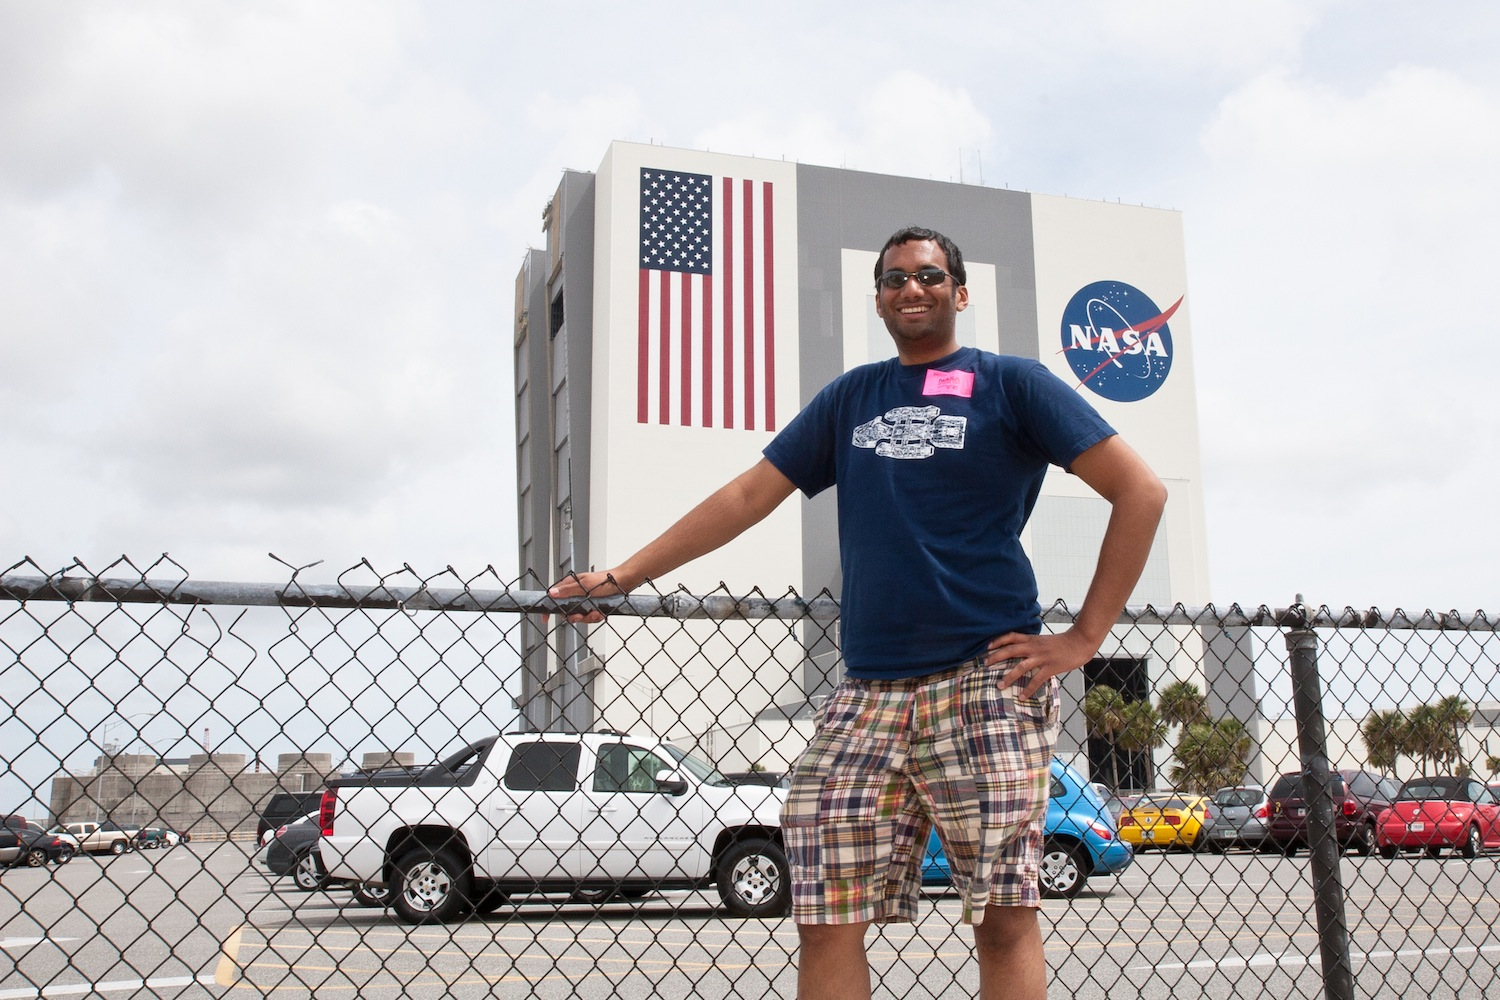 NASA Kennedy Space Center, 2009